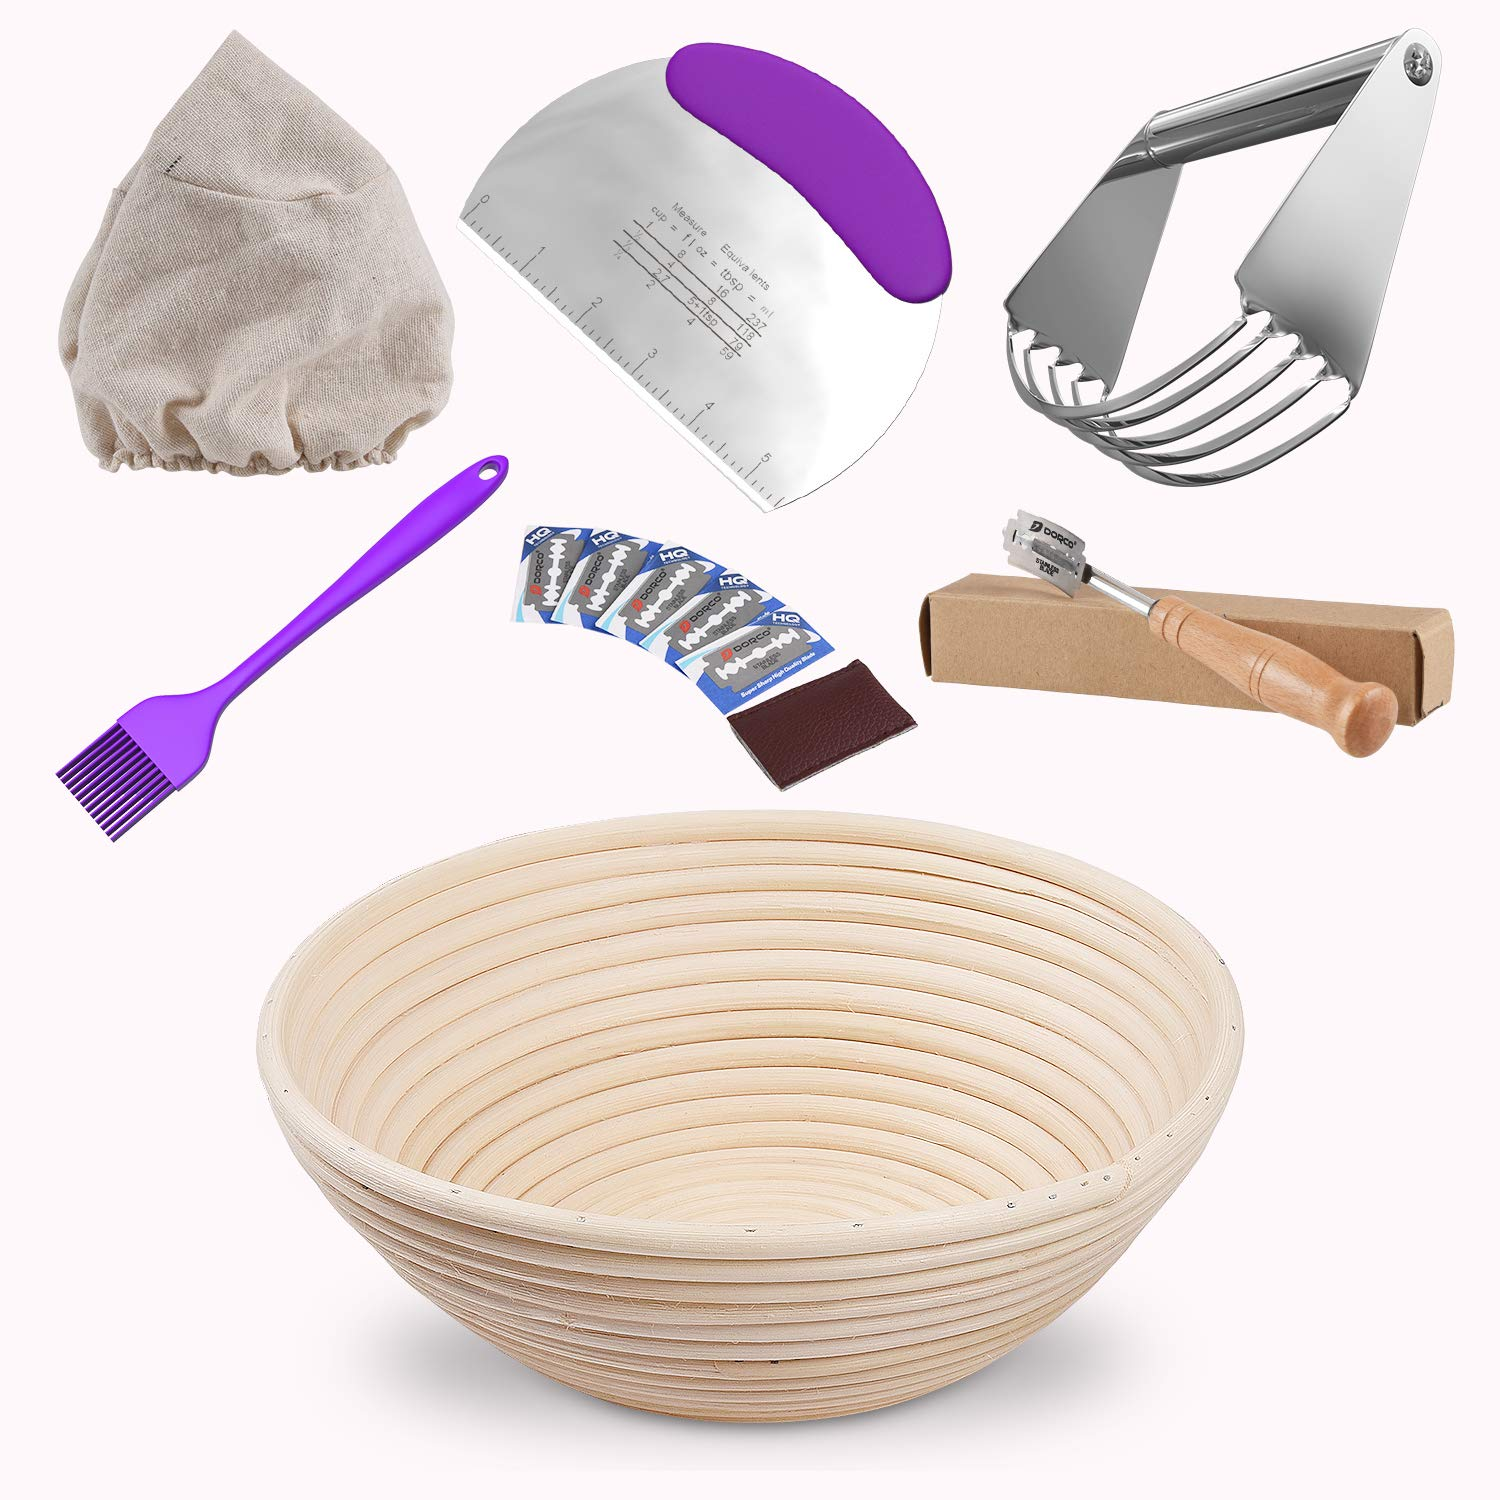 10''Banneton Proofing Basket Set-Bread Proofing Basket with(Dough Blender,Stainless Steel Dough Scraper,Bread Lame,Silicone Basting Brush,Sourdough Basket, Cloth Liner)for Professional Home Baking Tool